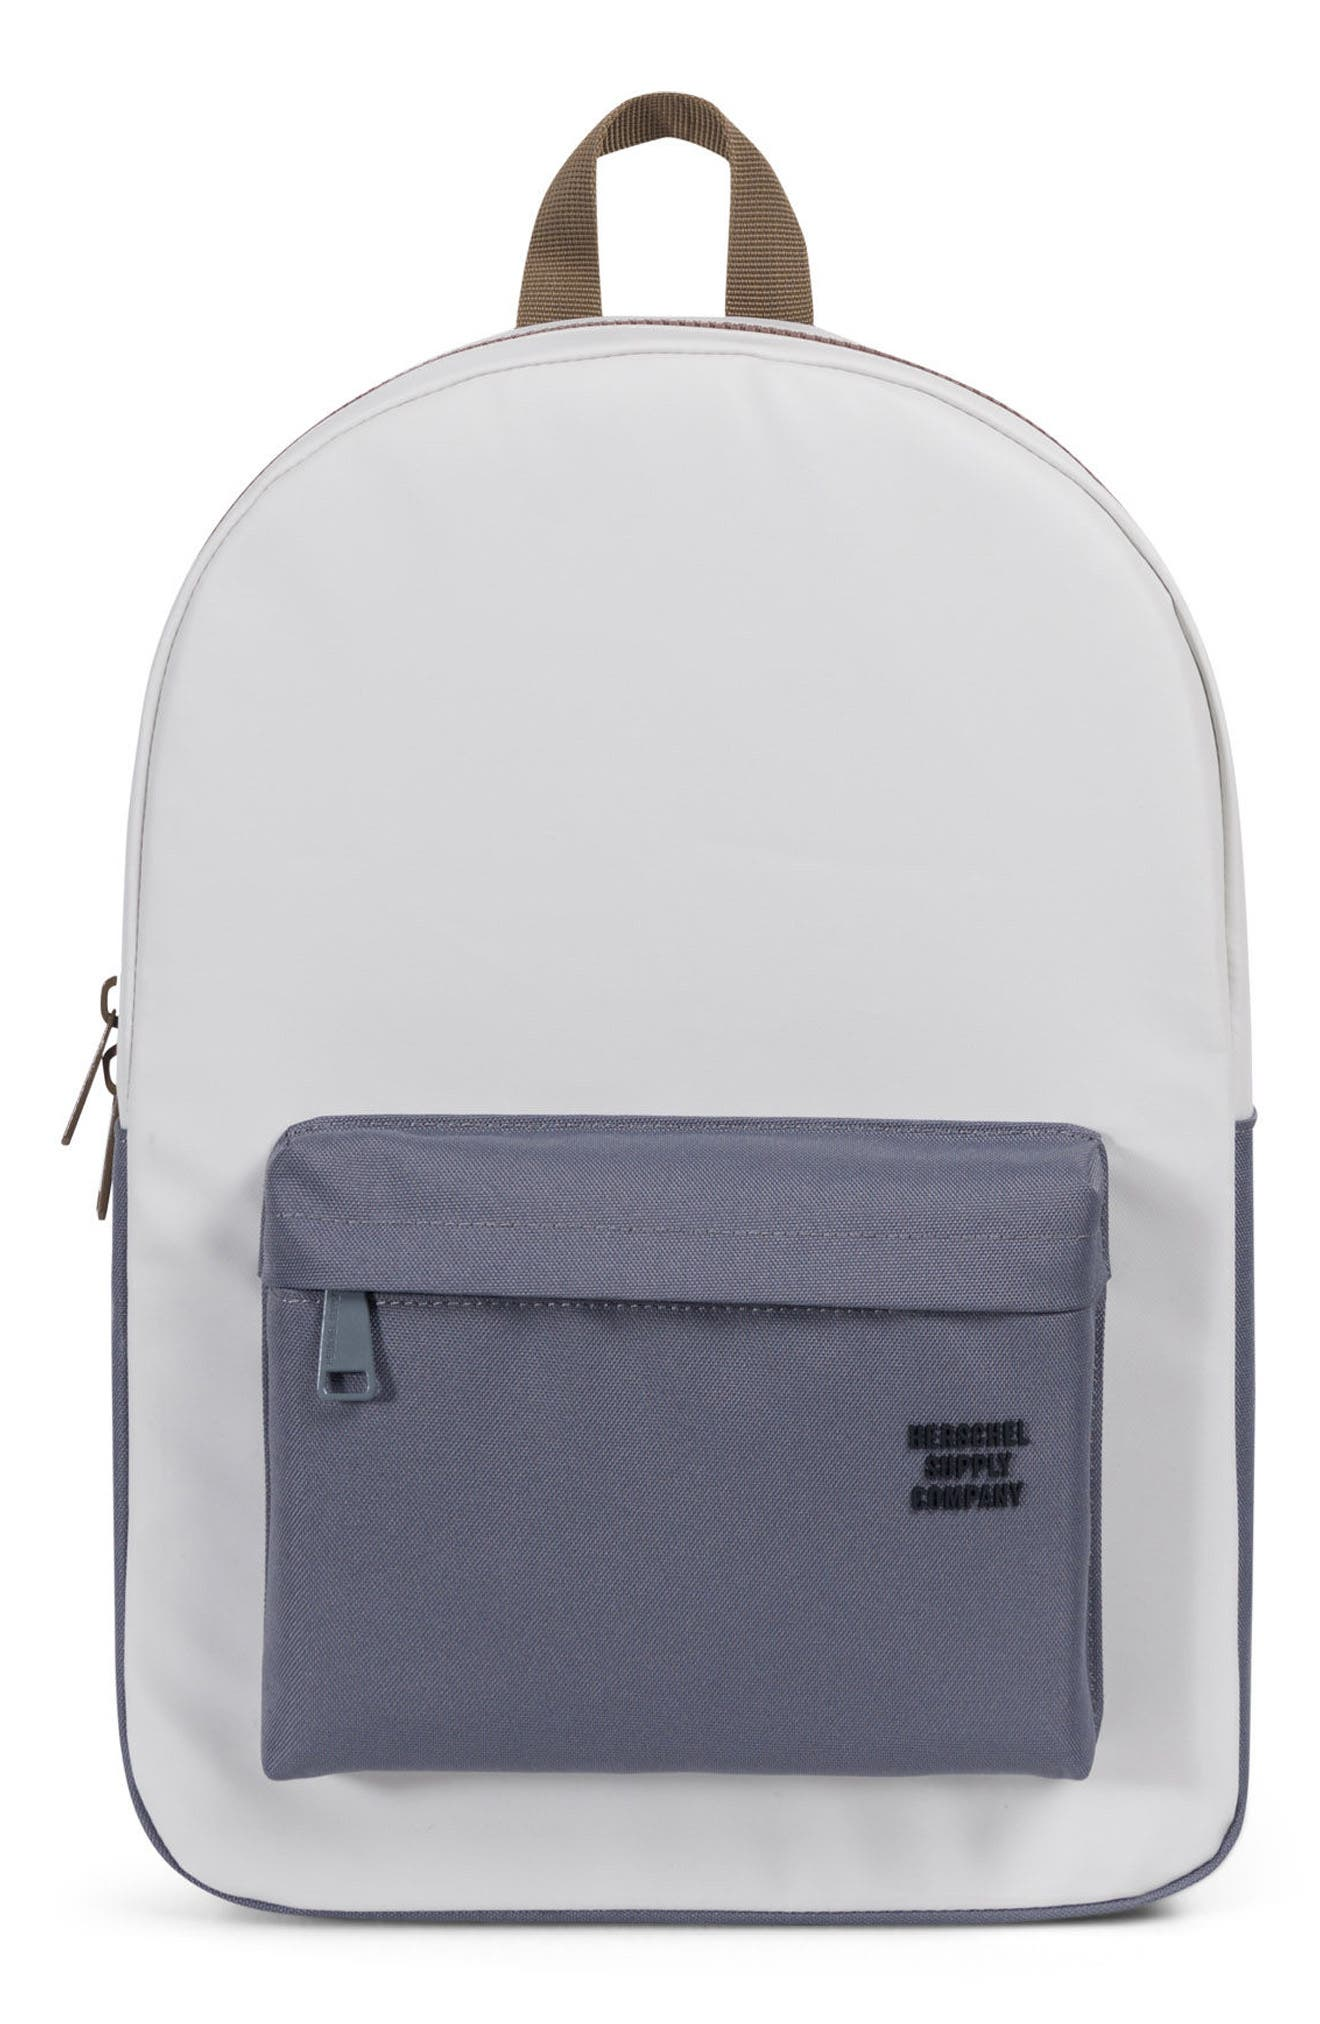 Herschel Supply Co. Winlaw Polycoat Studio Backpack